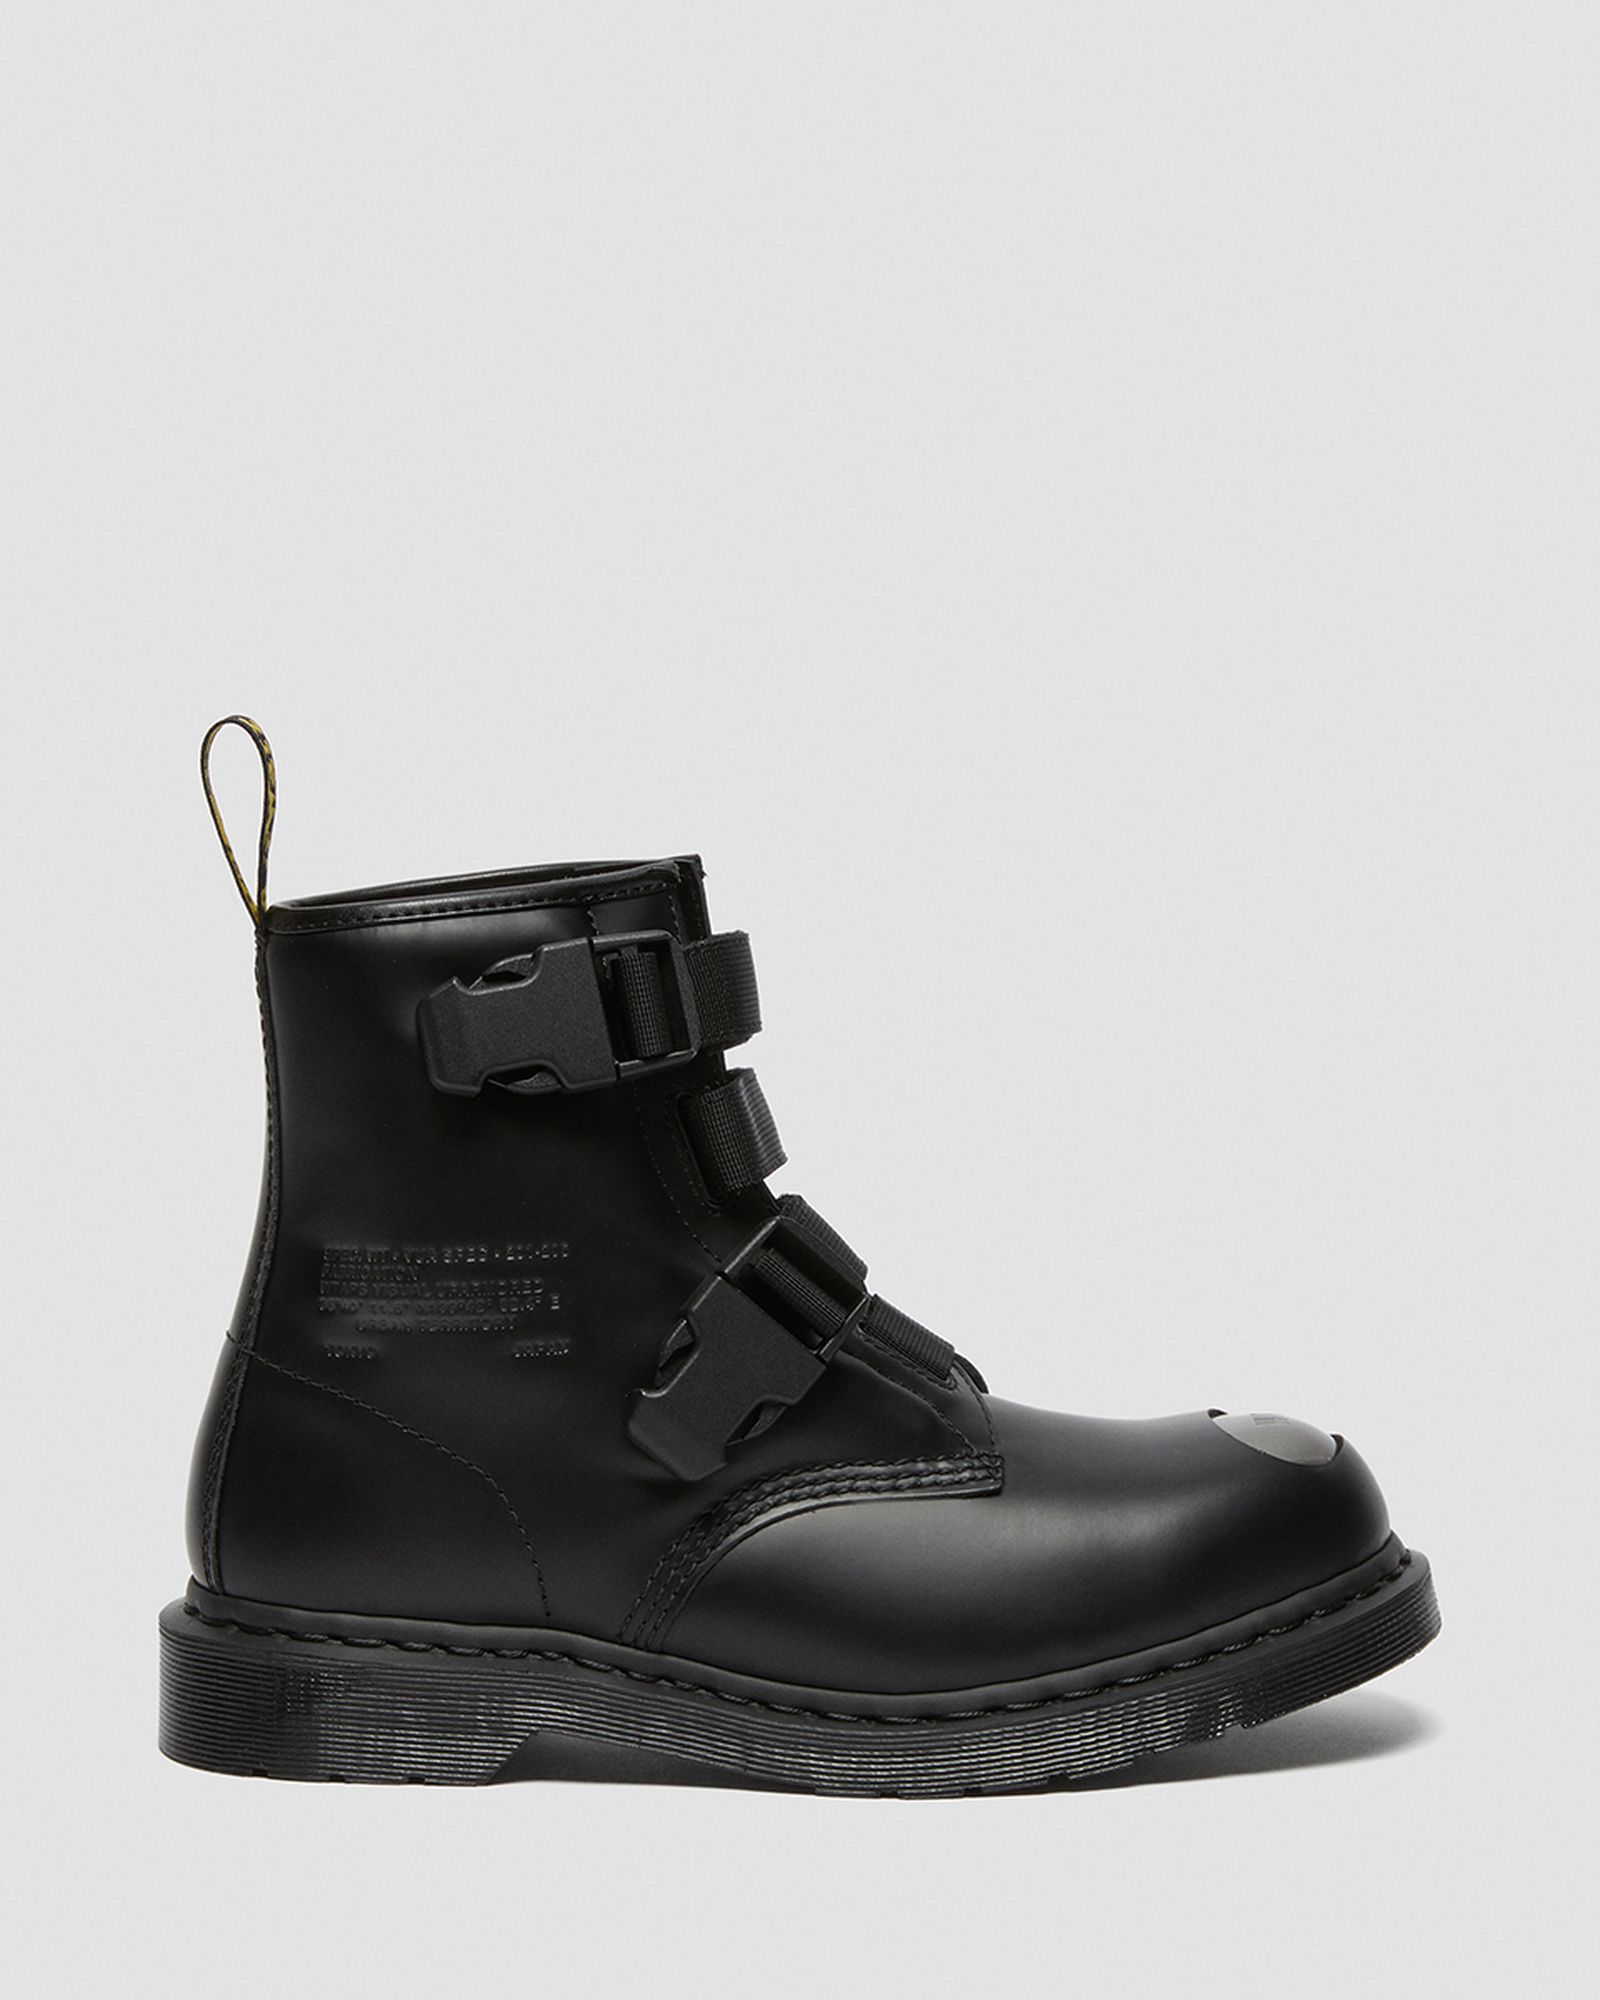 wtaps-dr-martens-1460-remastered-release-date-price-1-04